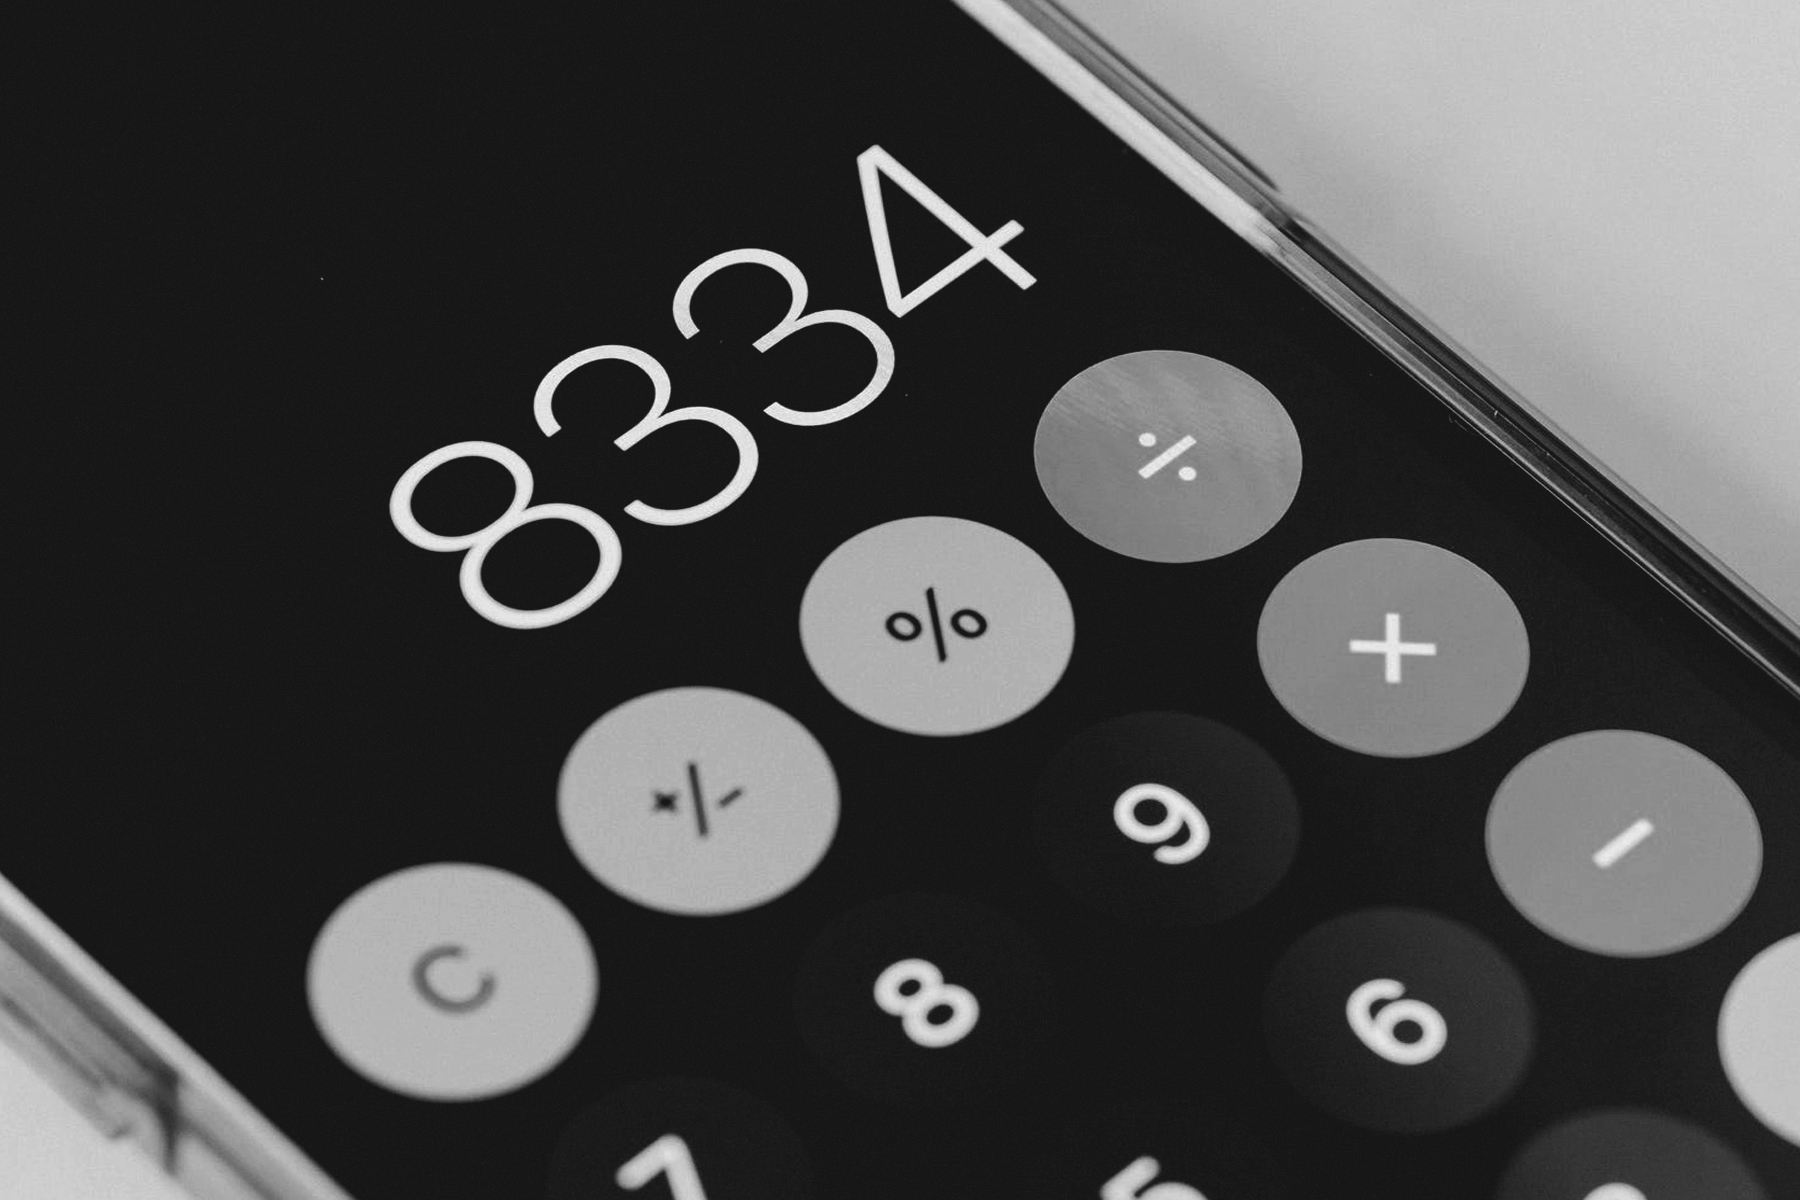 an iphone displaying a calculator app with the number 8334 displayed.